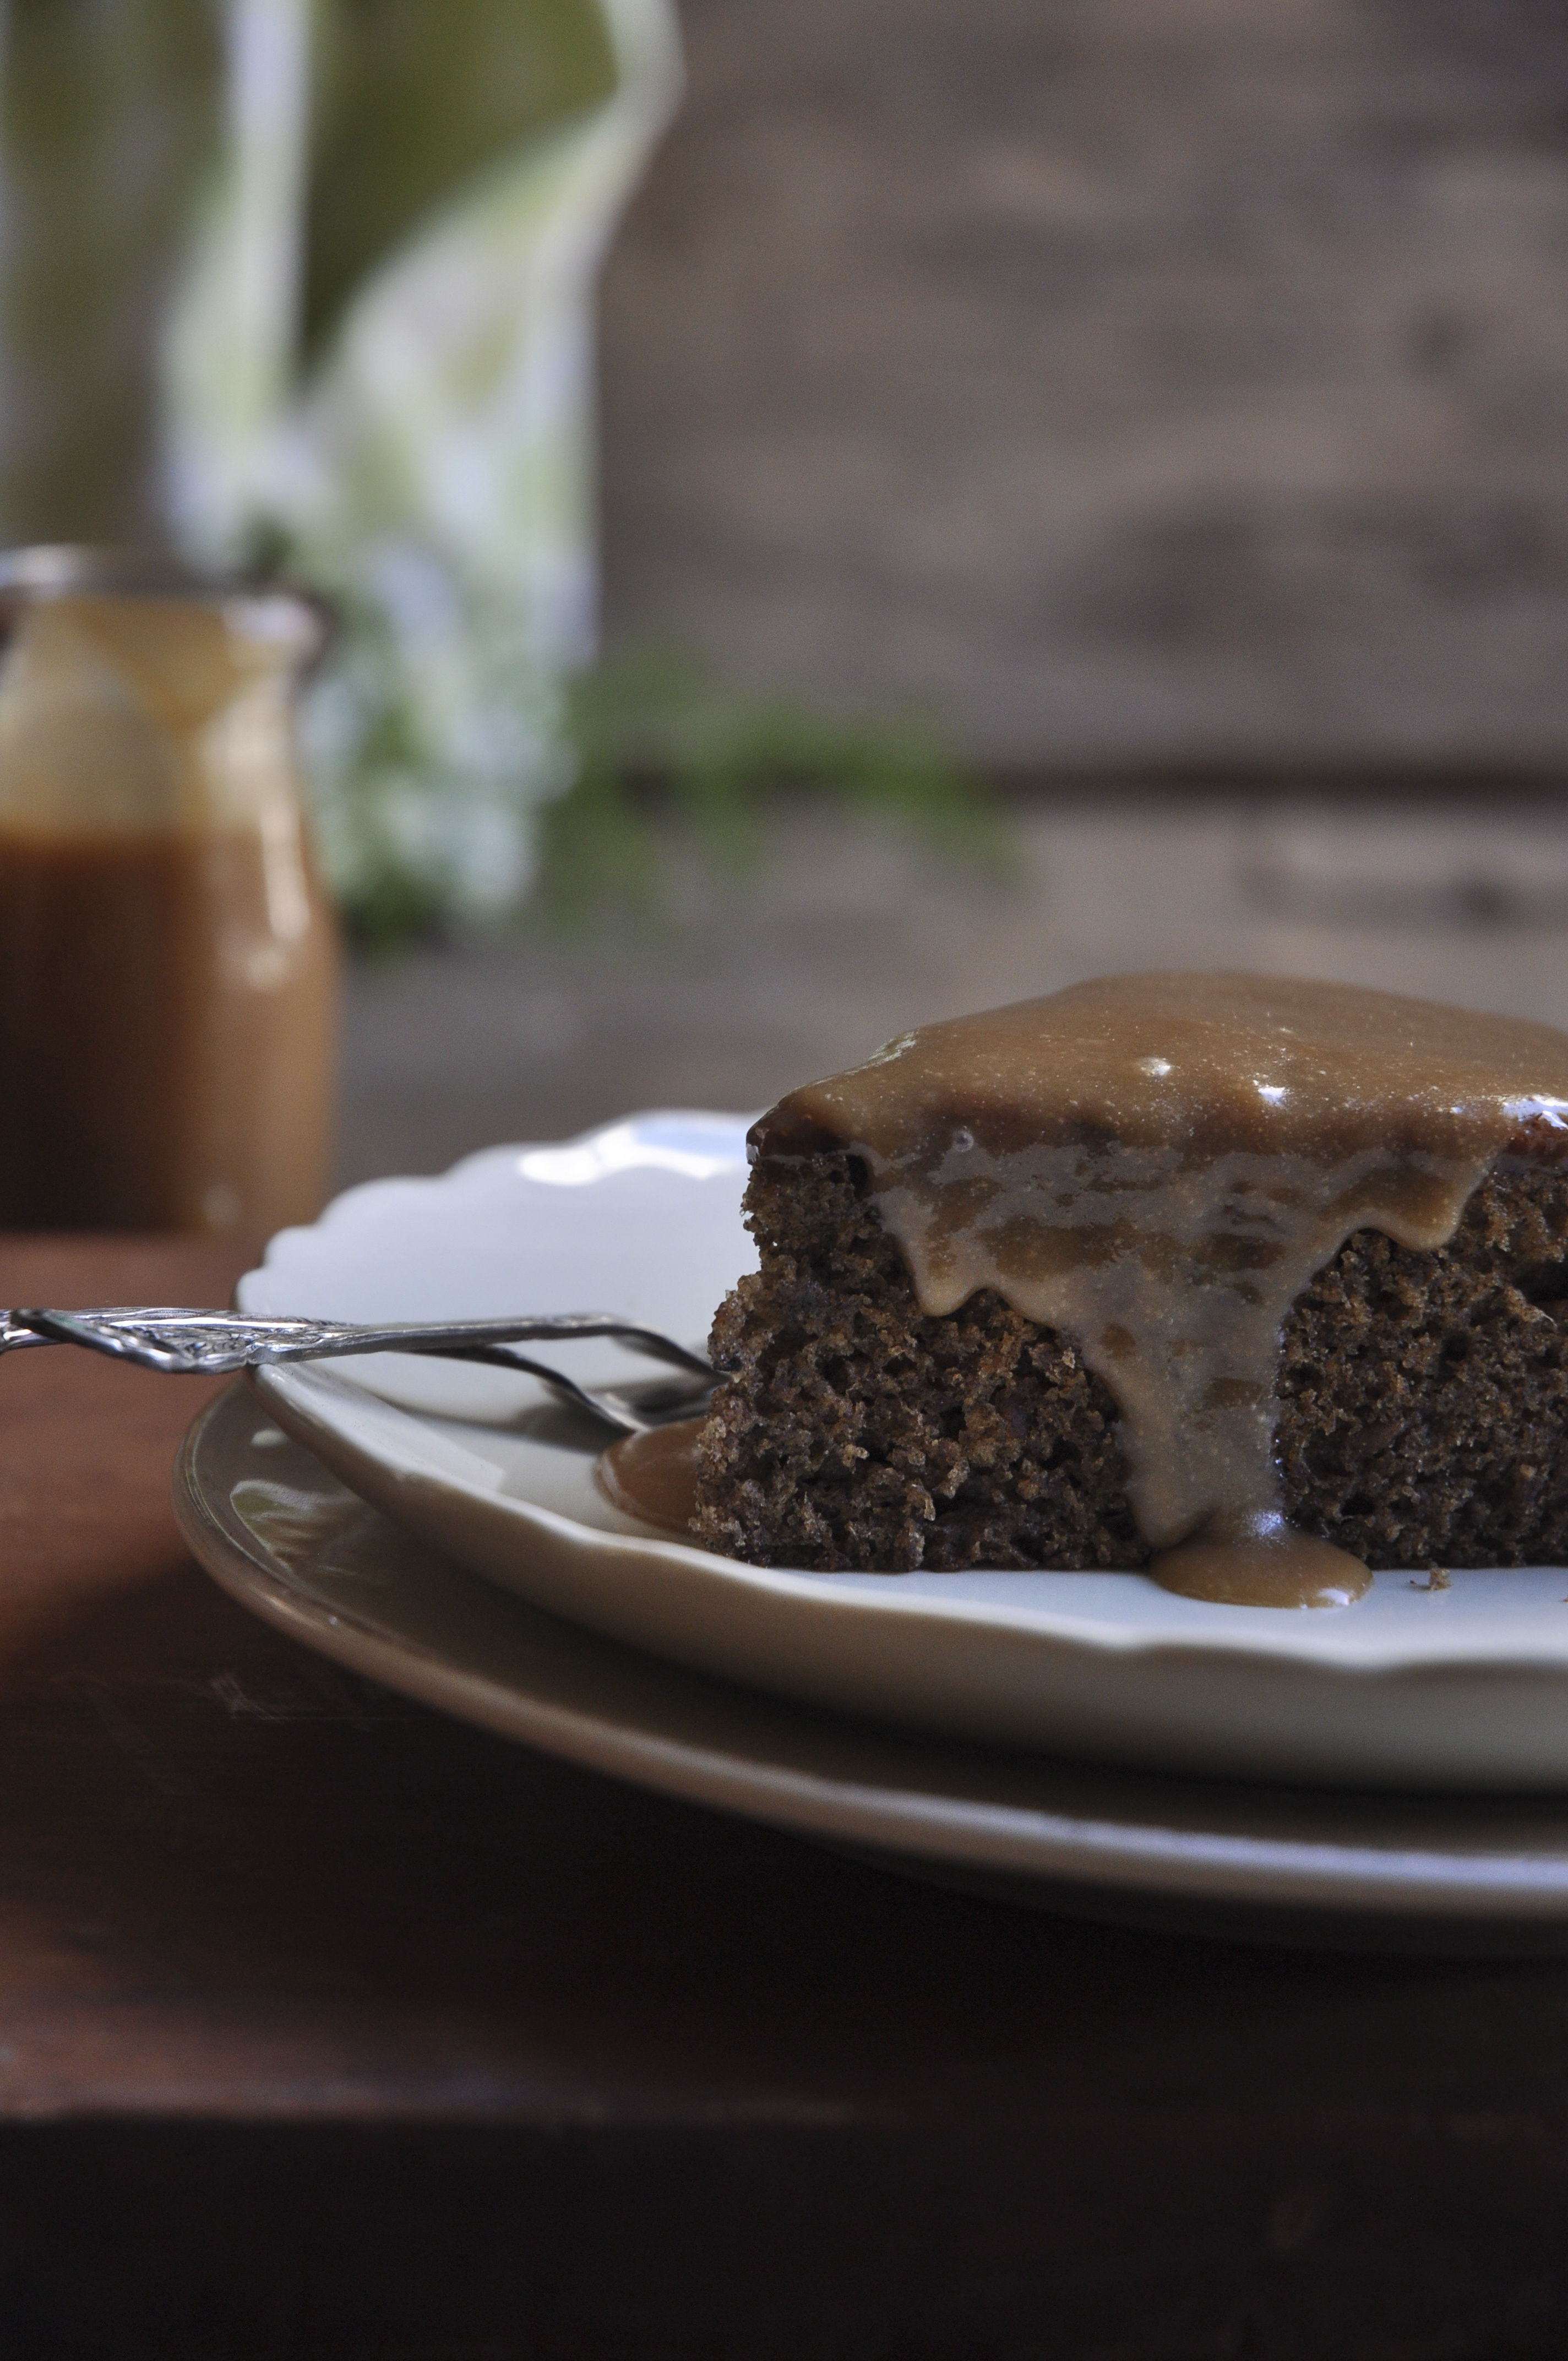 Must see Cake Eid Al-Fitr Food - Sticky-Toffee-Cake-with-Dates-3  Collection_646663 .jpg